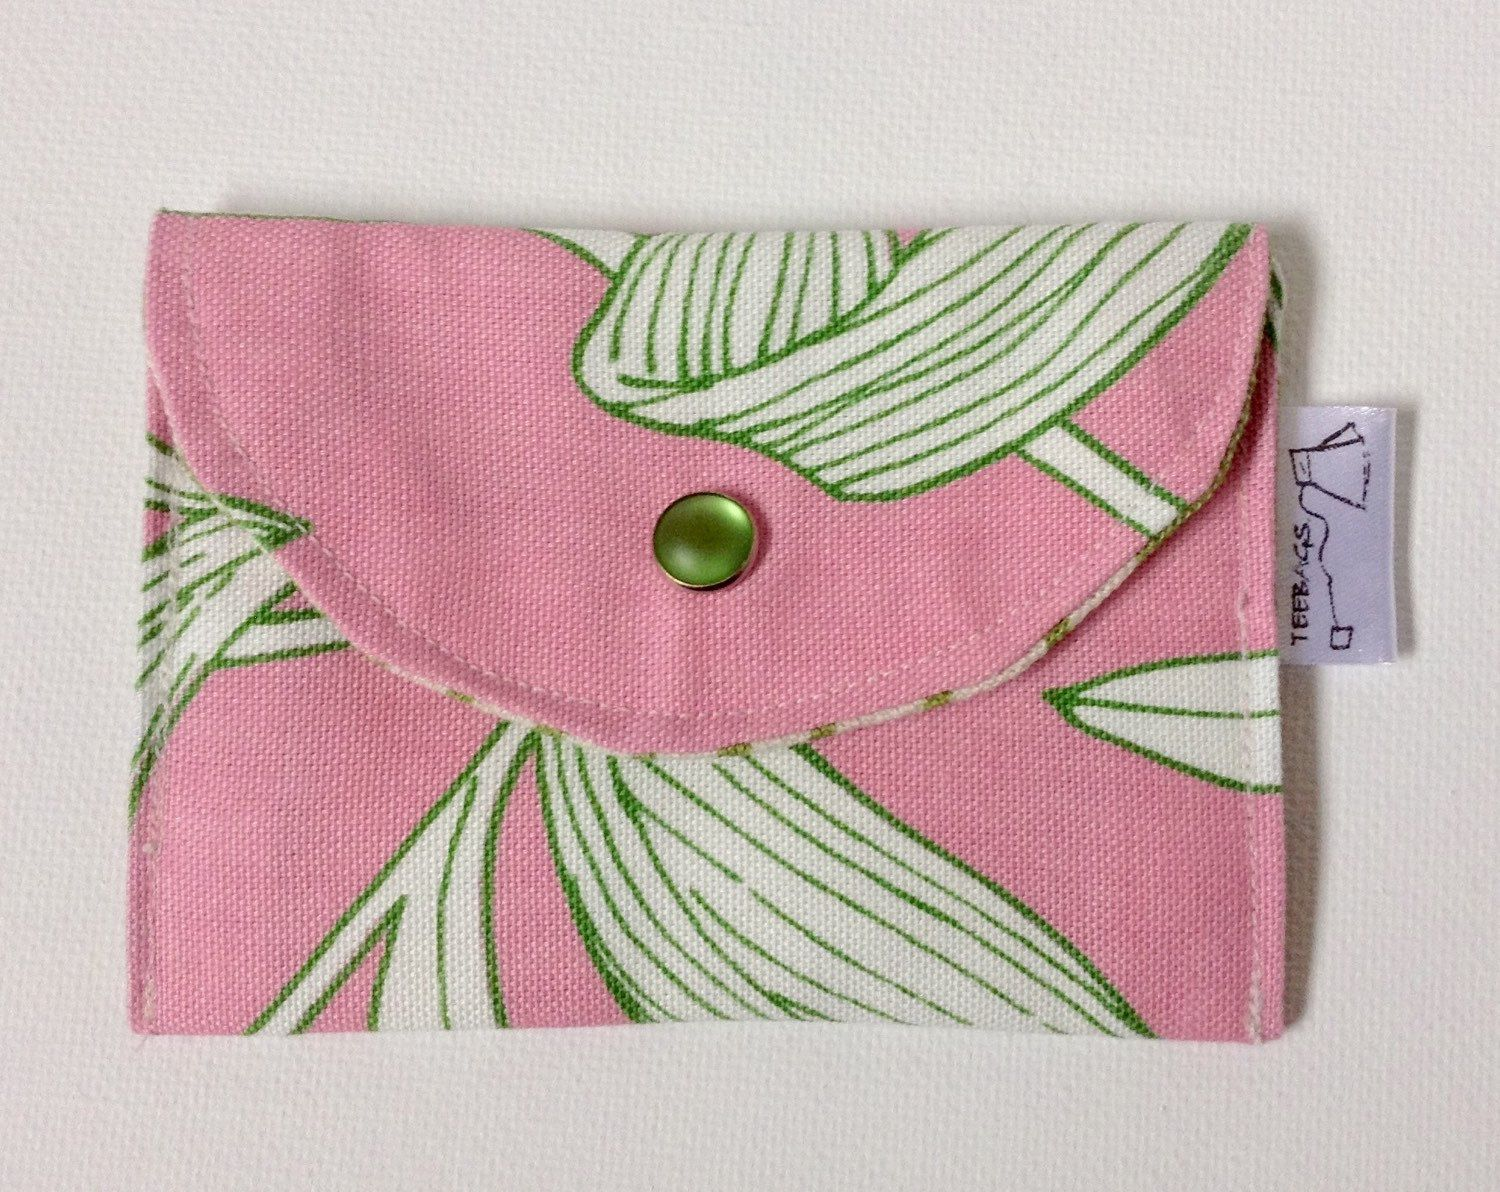 Debit/credit/business card wallet in pink with white and lime green leaves by steepedtee on Etsy https://www.etsy.com/listing/228197603/debitcreditbusiness-card-wallet-in-pink